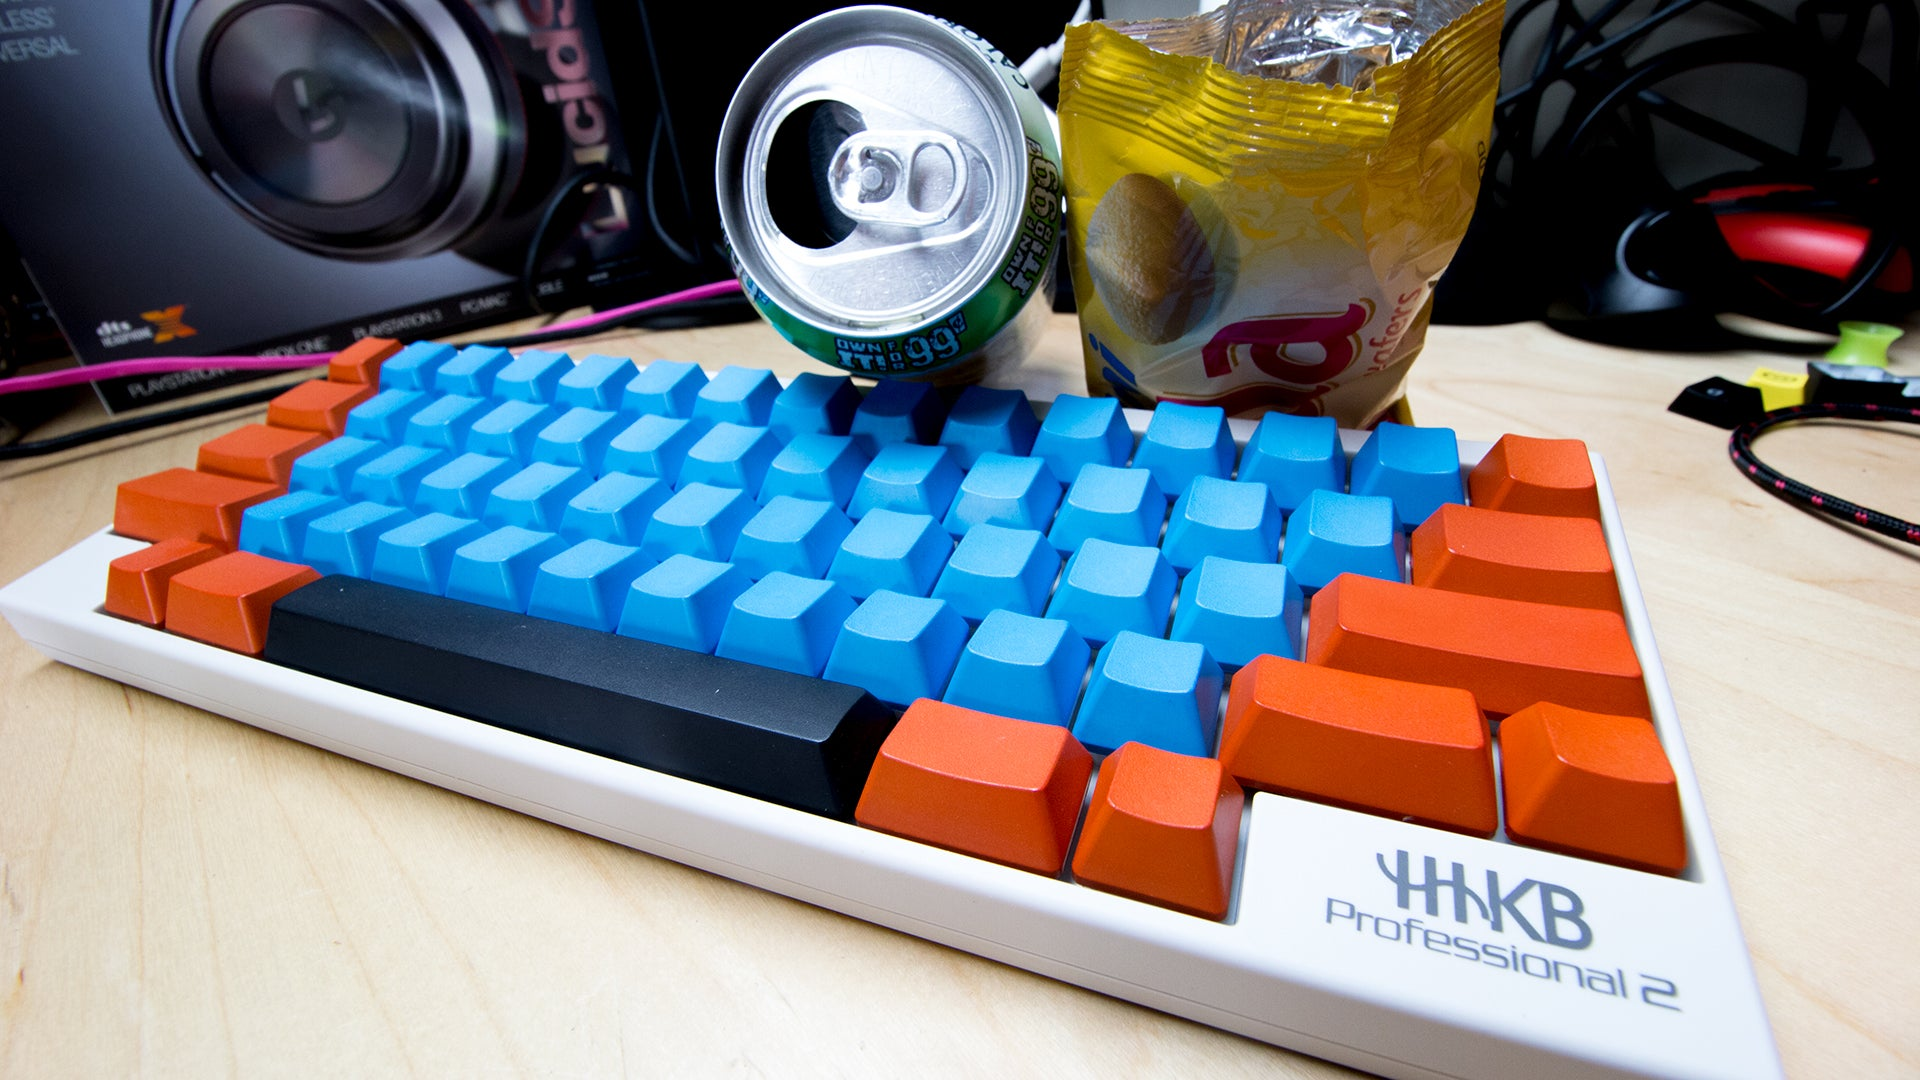 Snacking Near Your Keyboard: A Guide To What (Not) To Do